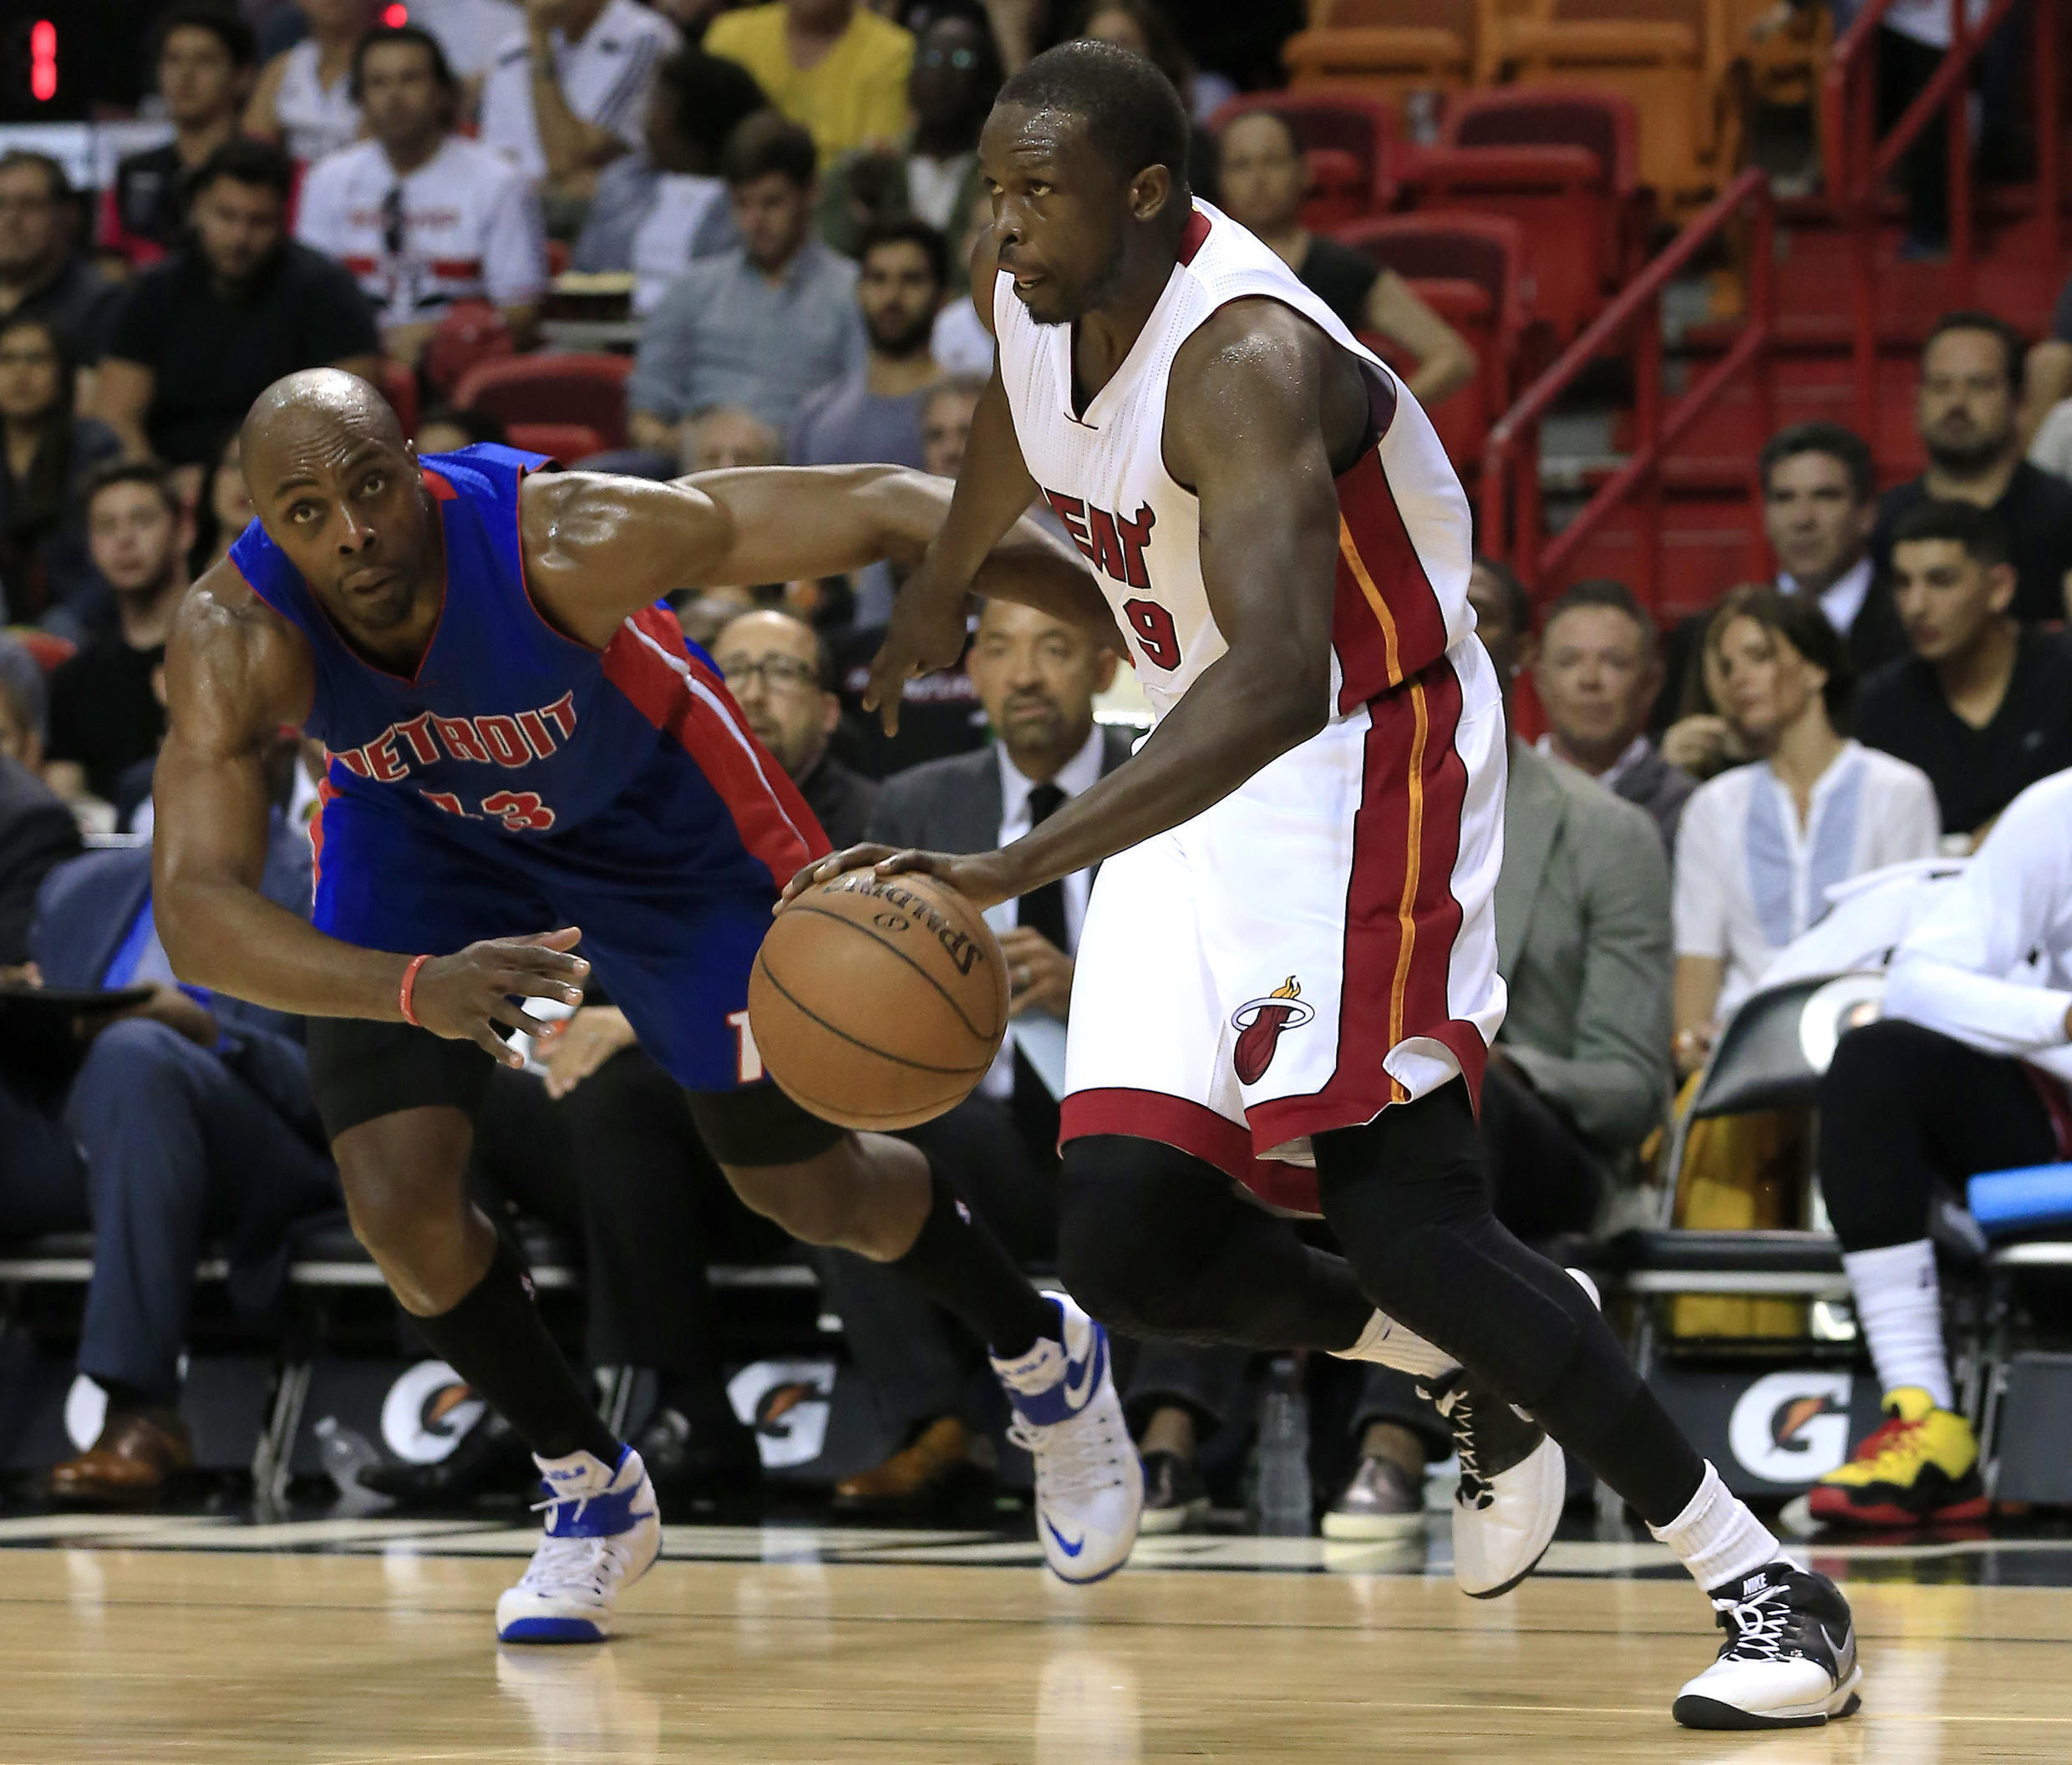 Miami Heat forward Luol Deng (right) dribbles the ball in the match against Detroit Pistons.